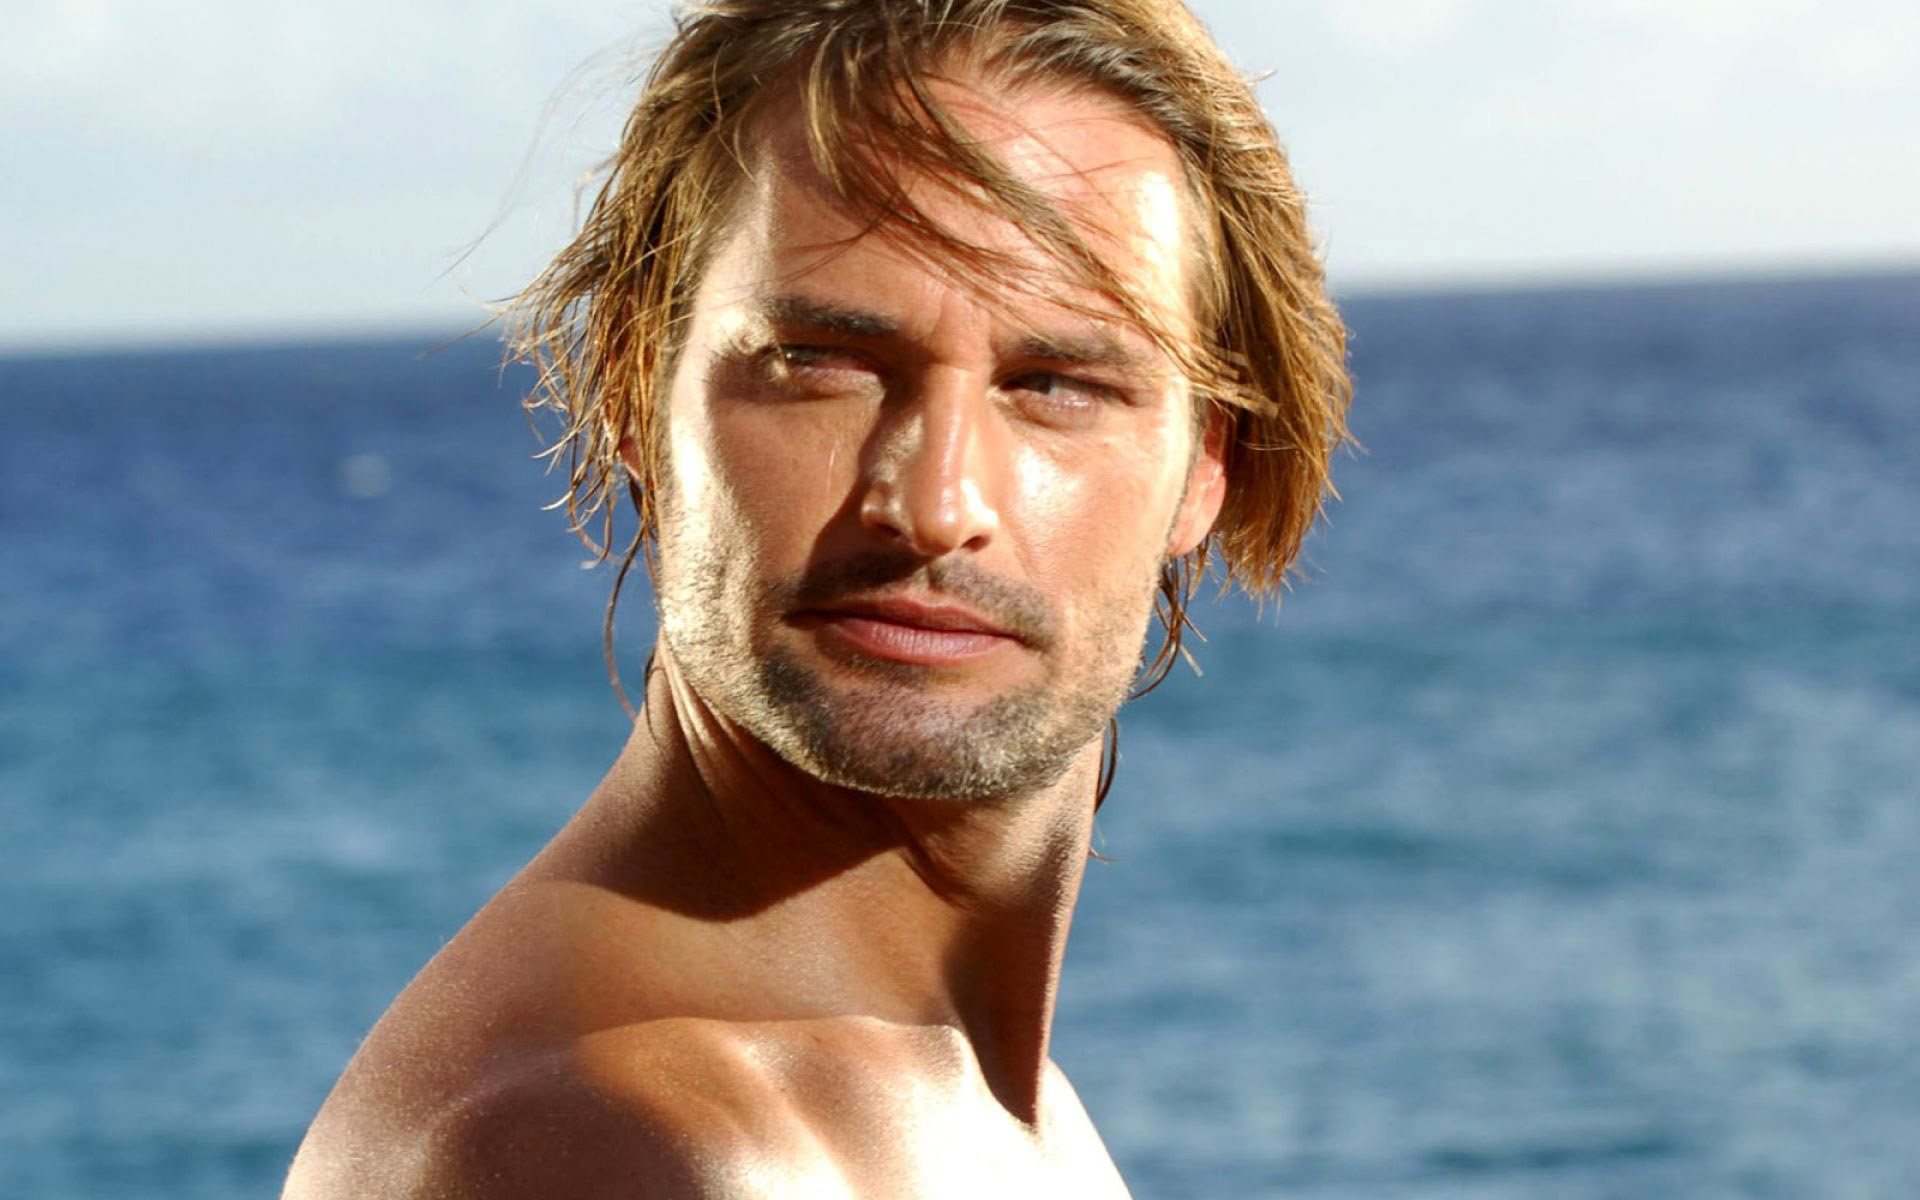 Josh Holloway Sawyer en Perdidos estar%C3%A1 en Intelligence lo nuevo de Damon Lindelof1 Josh Holloway (Sawyer en Perdidos) estará en Intelligence